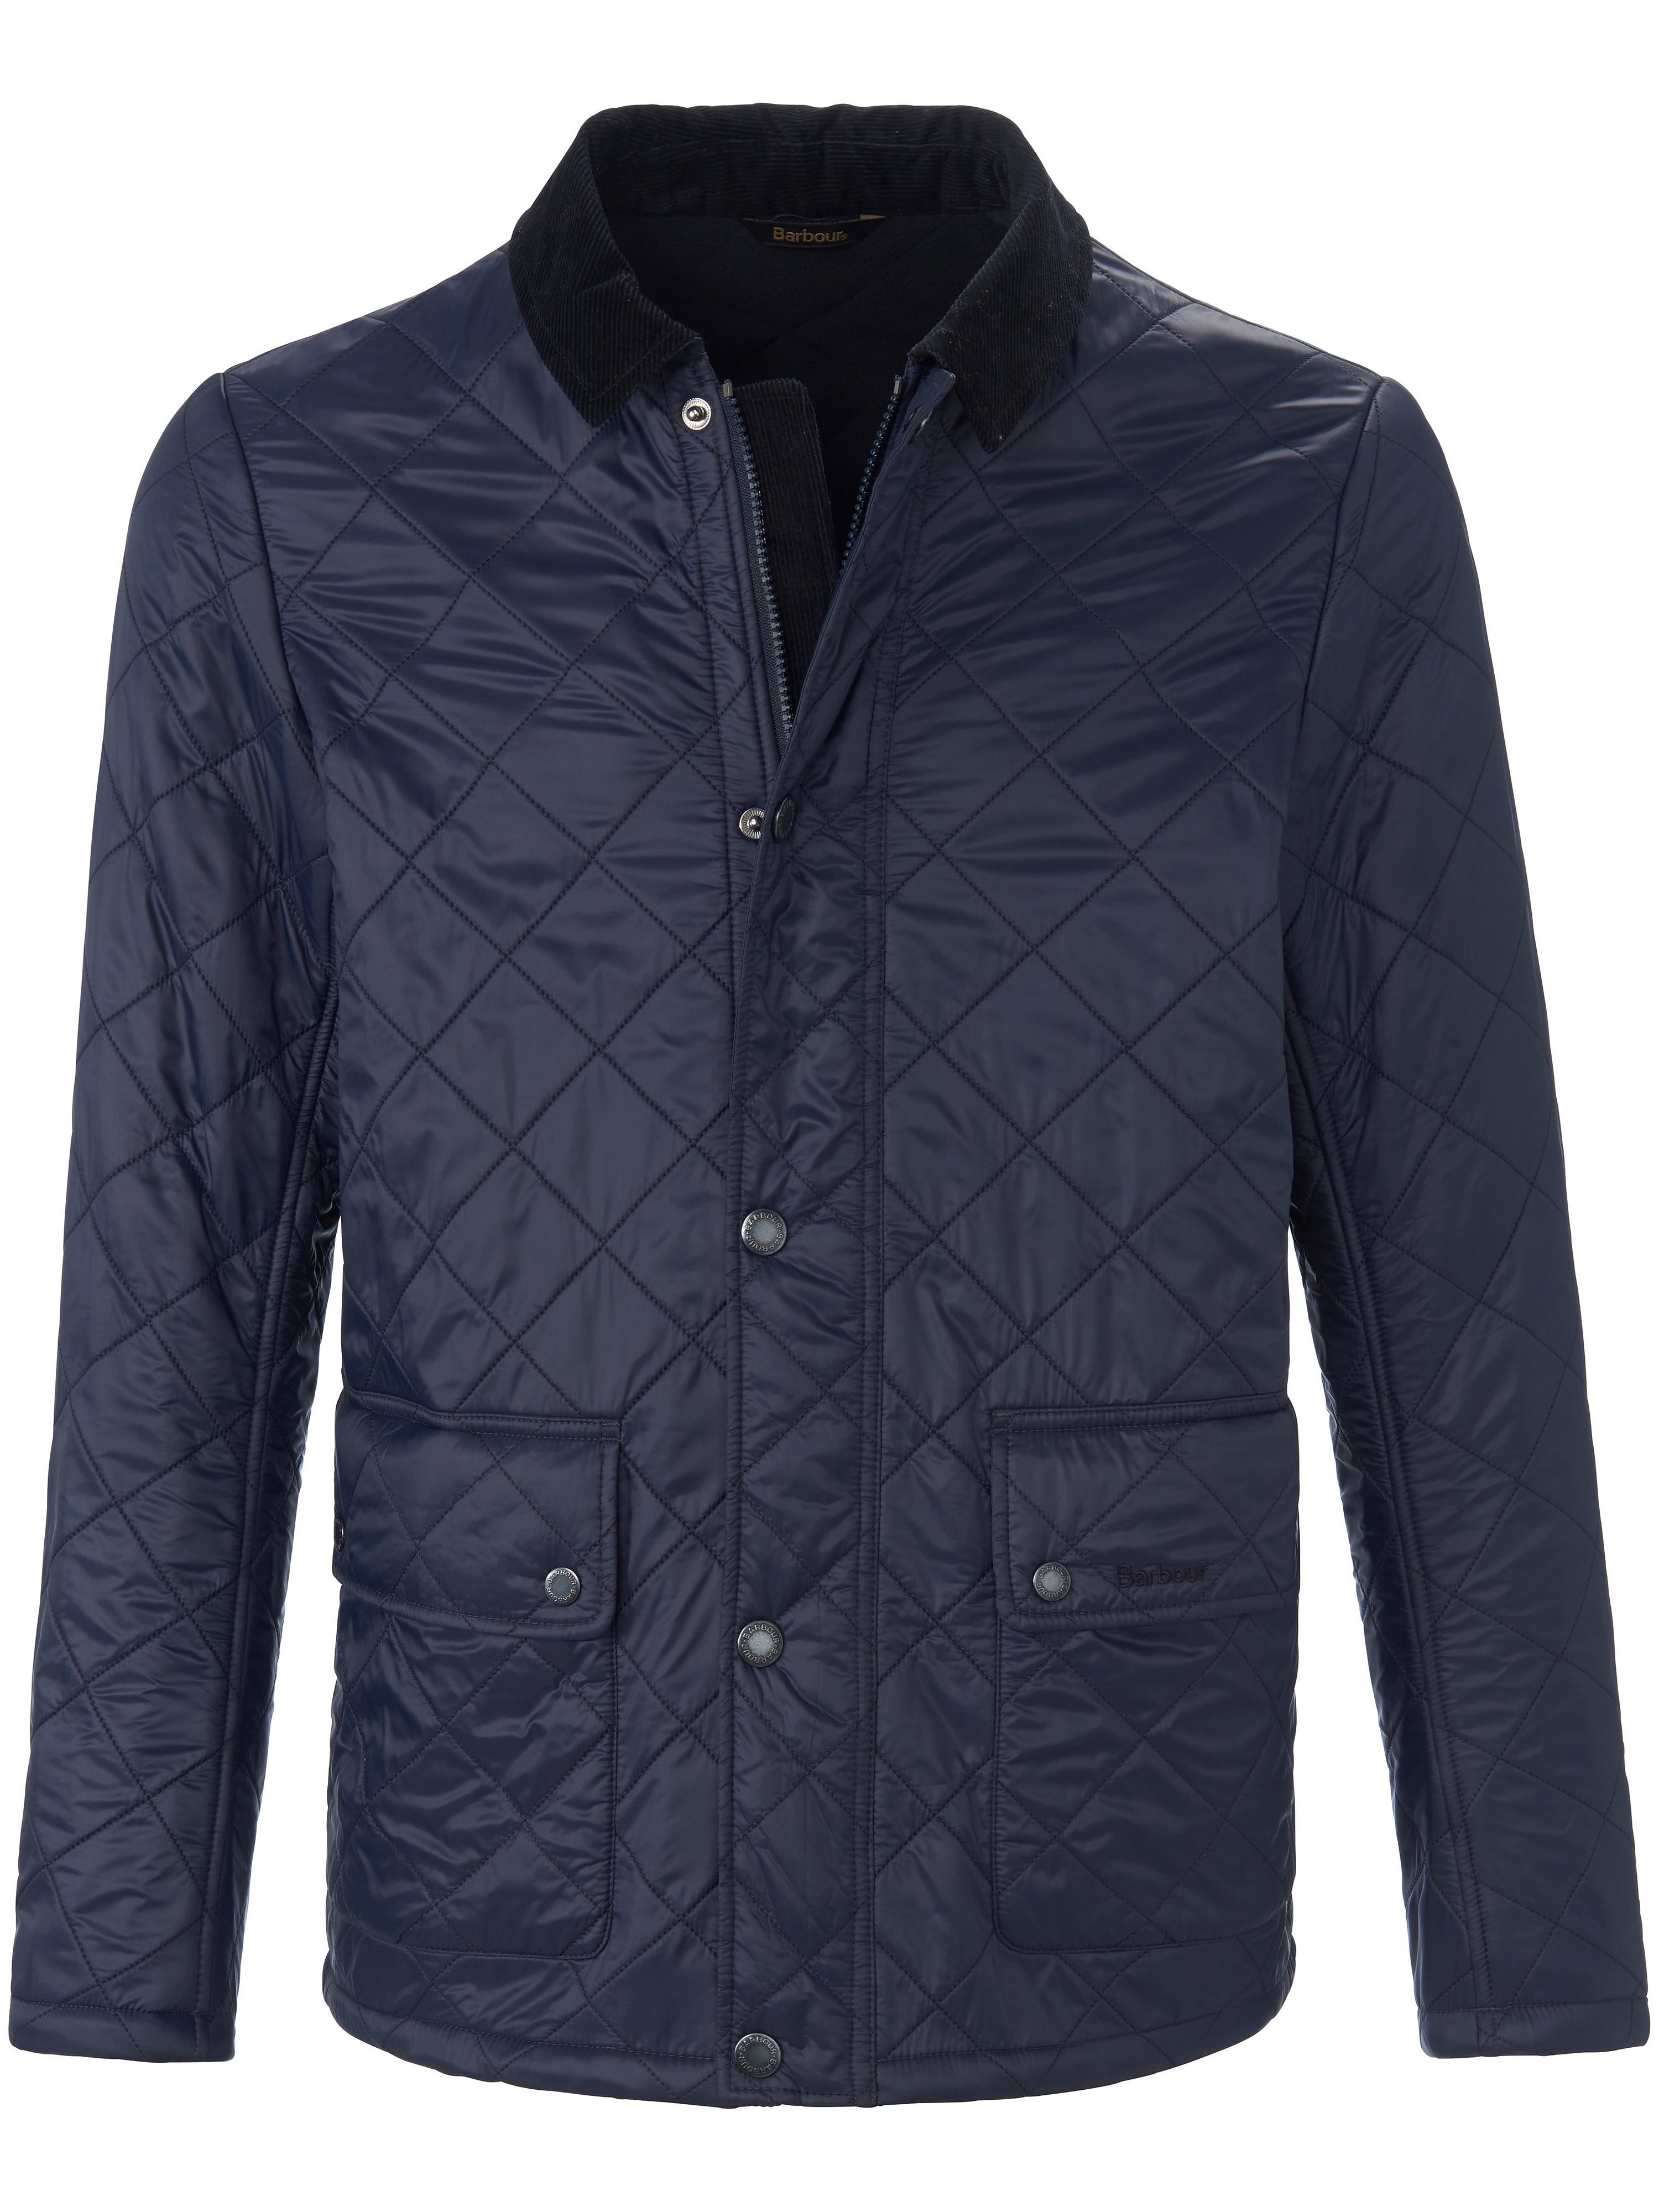 Quilted jacket Barbour blue